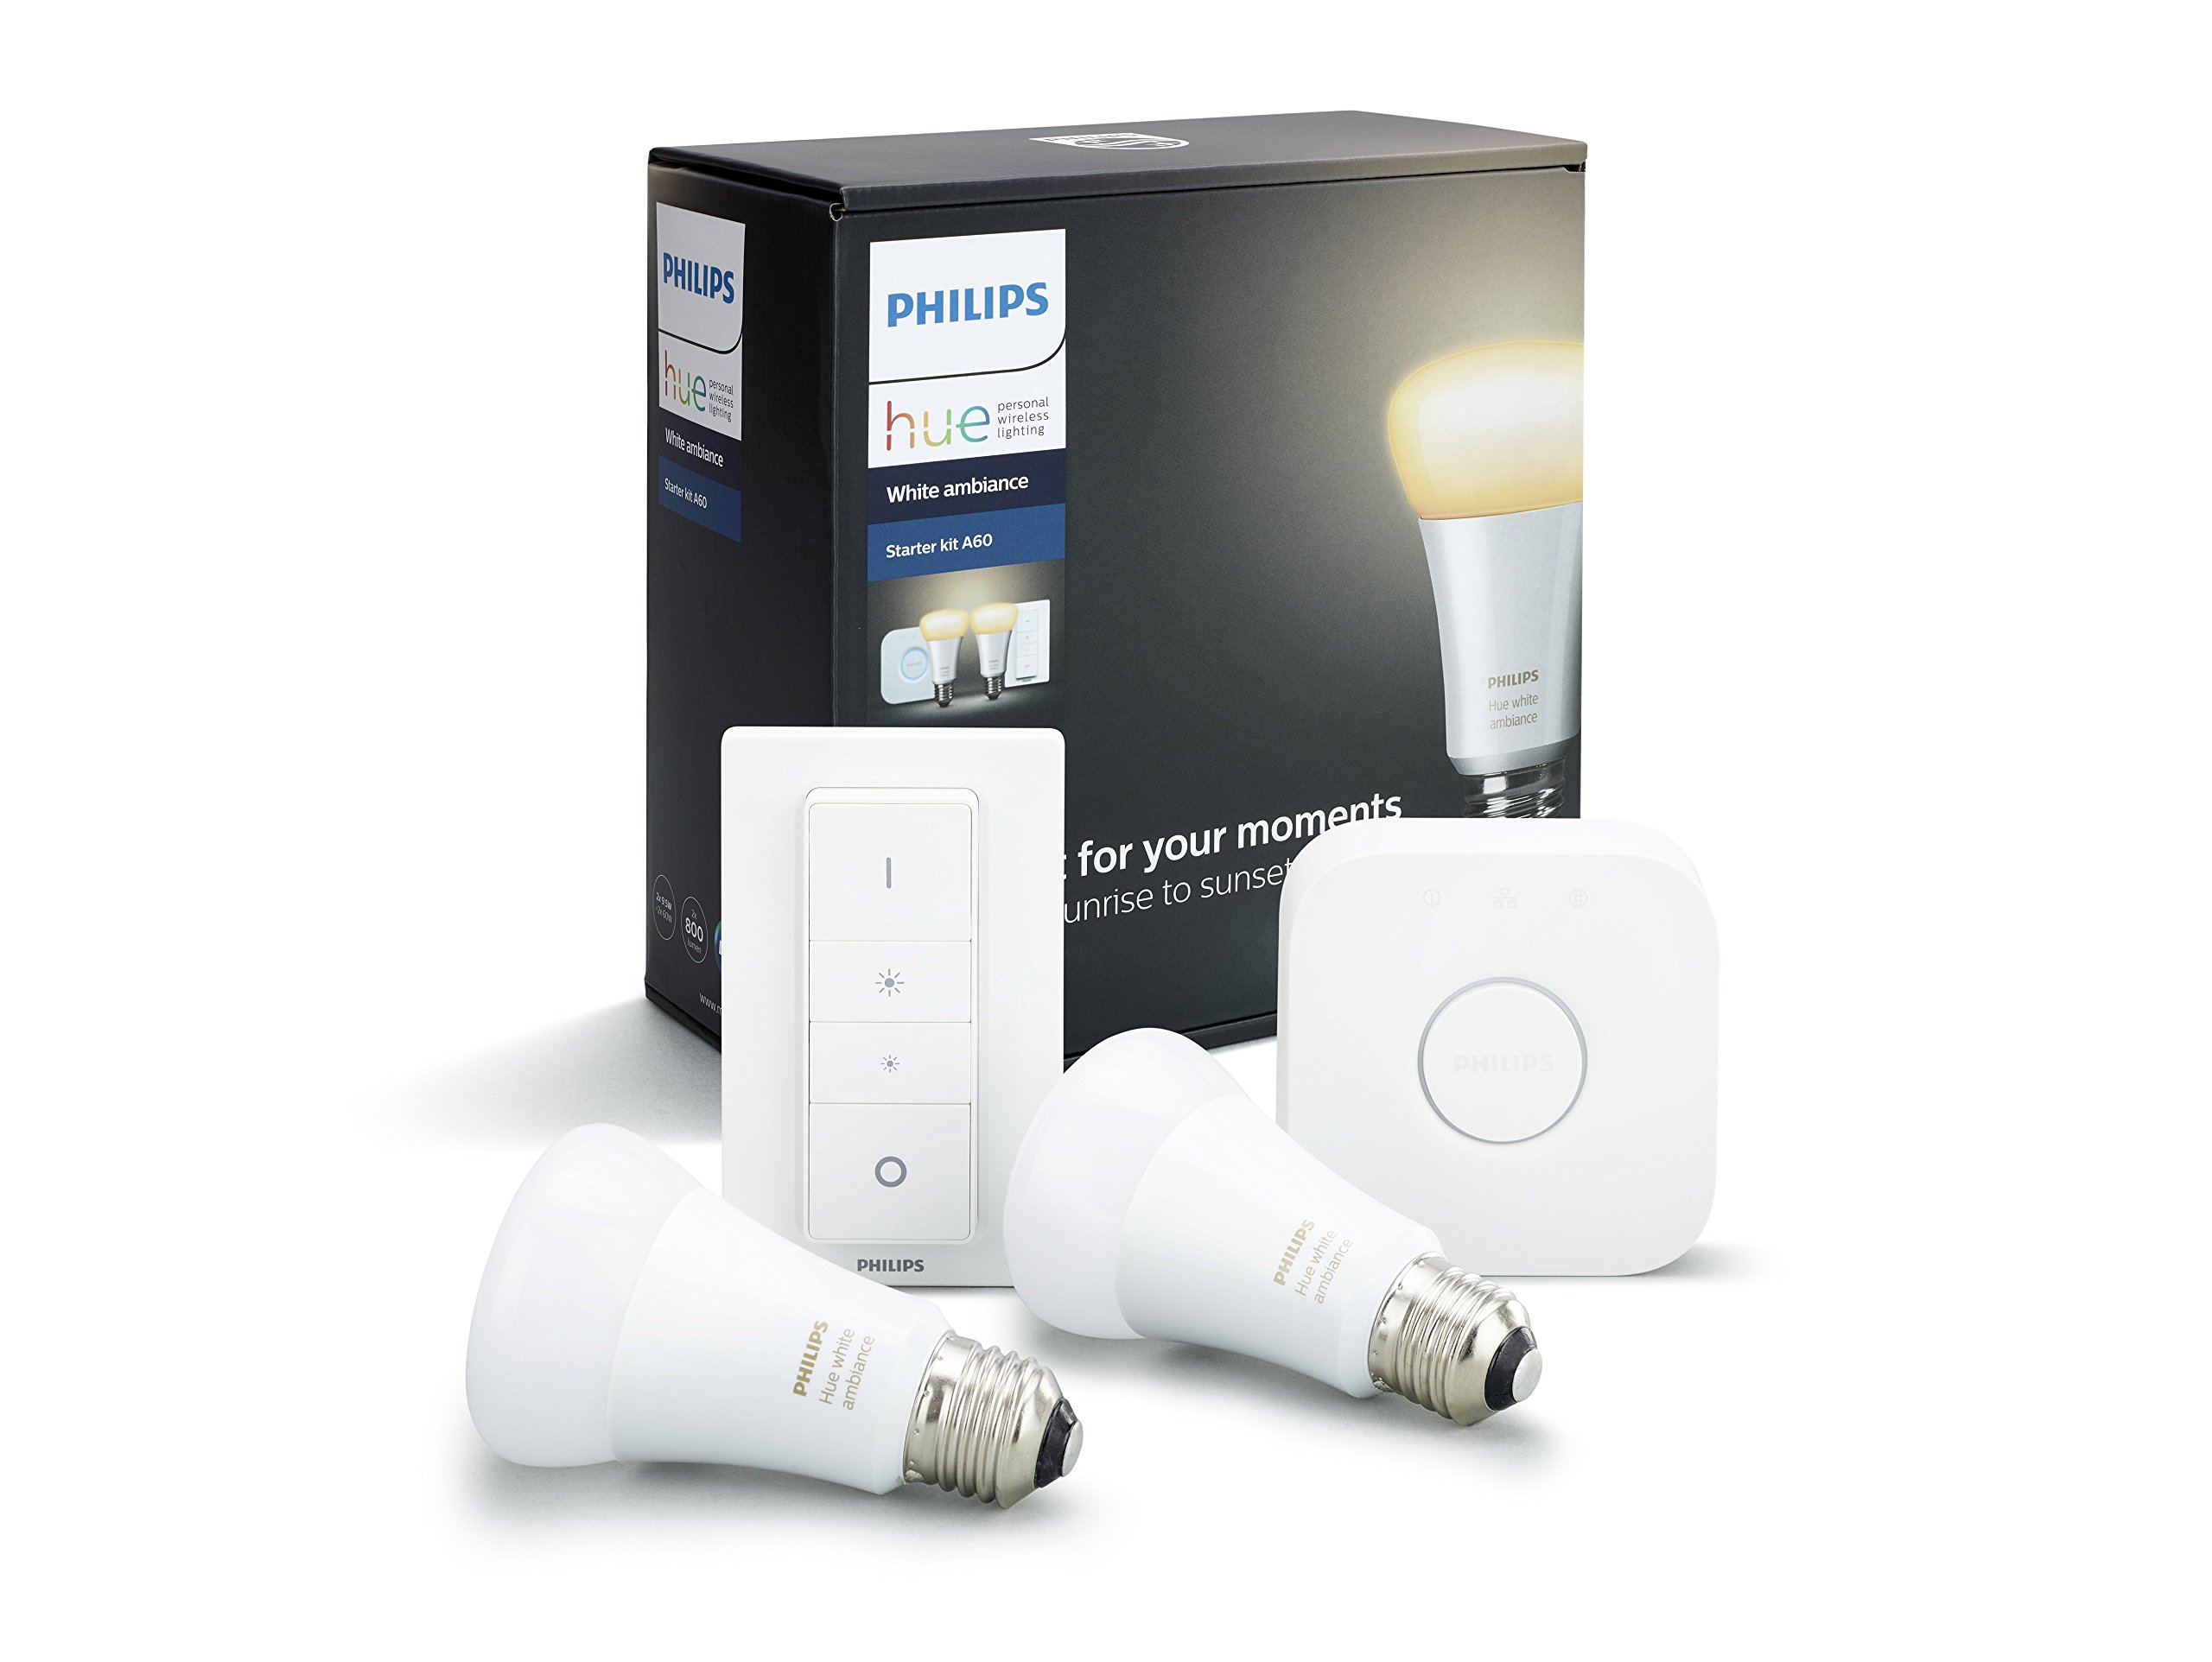 Philips Hue White Ambiance Smart Bulb Starter Kit - Edison Screw E27 (Compatible with Amazon Alexa, Apple HomeKit, and Google Assistant) 1